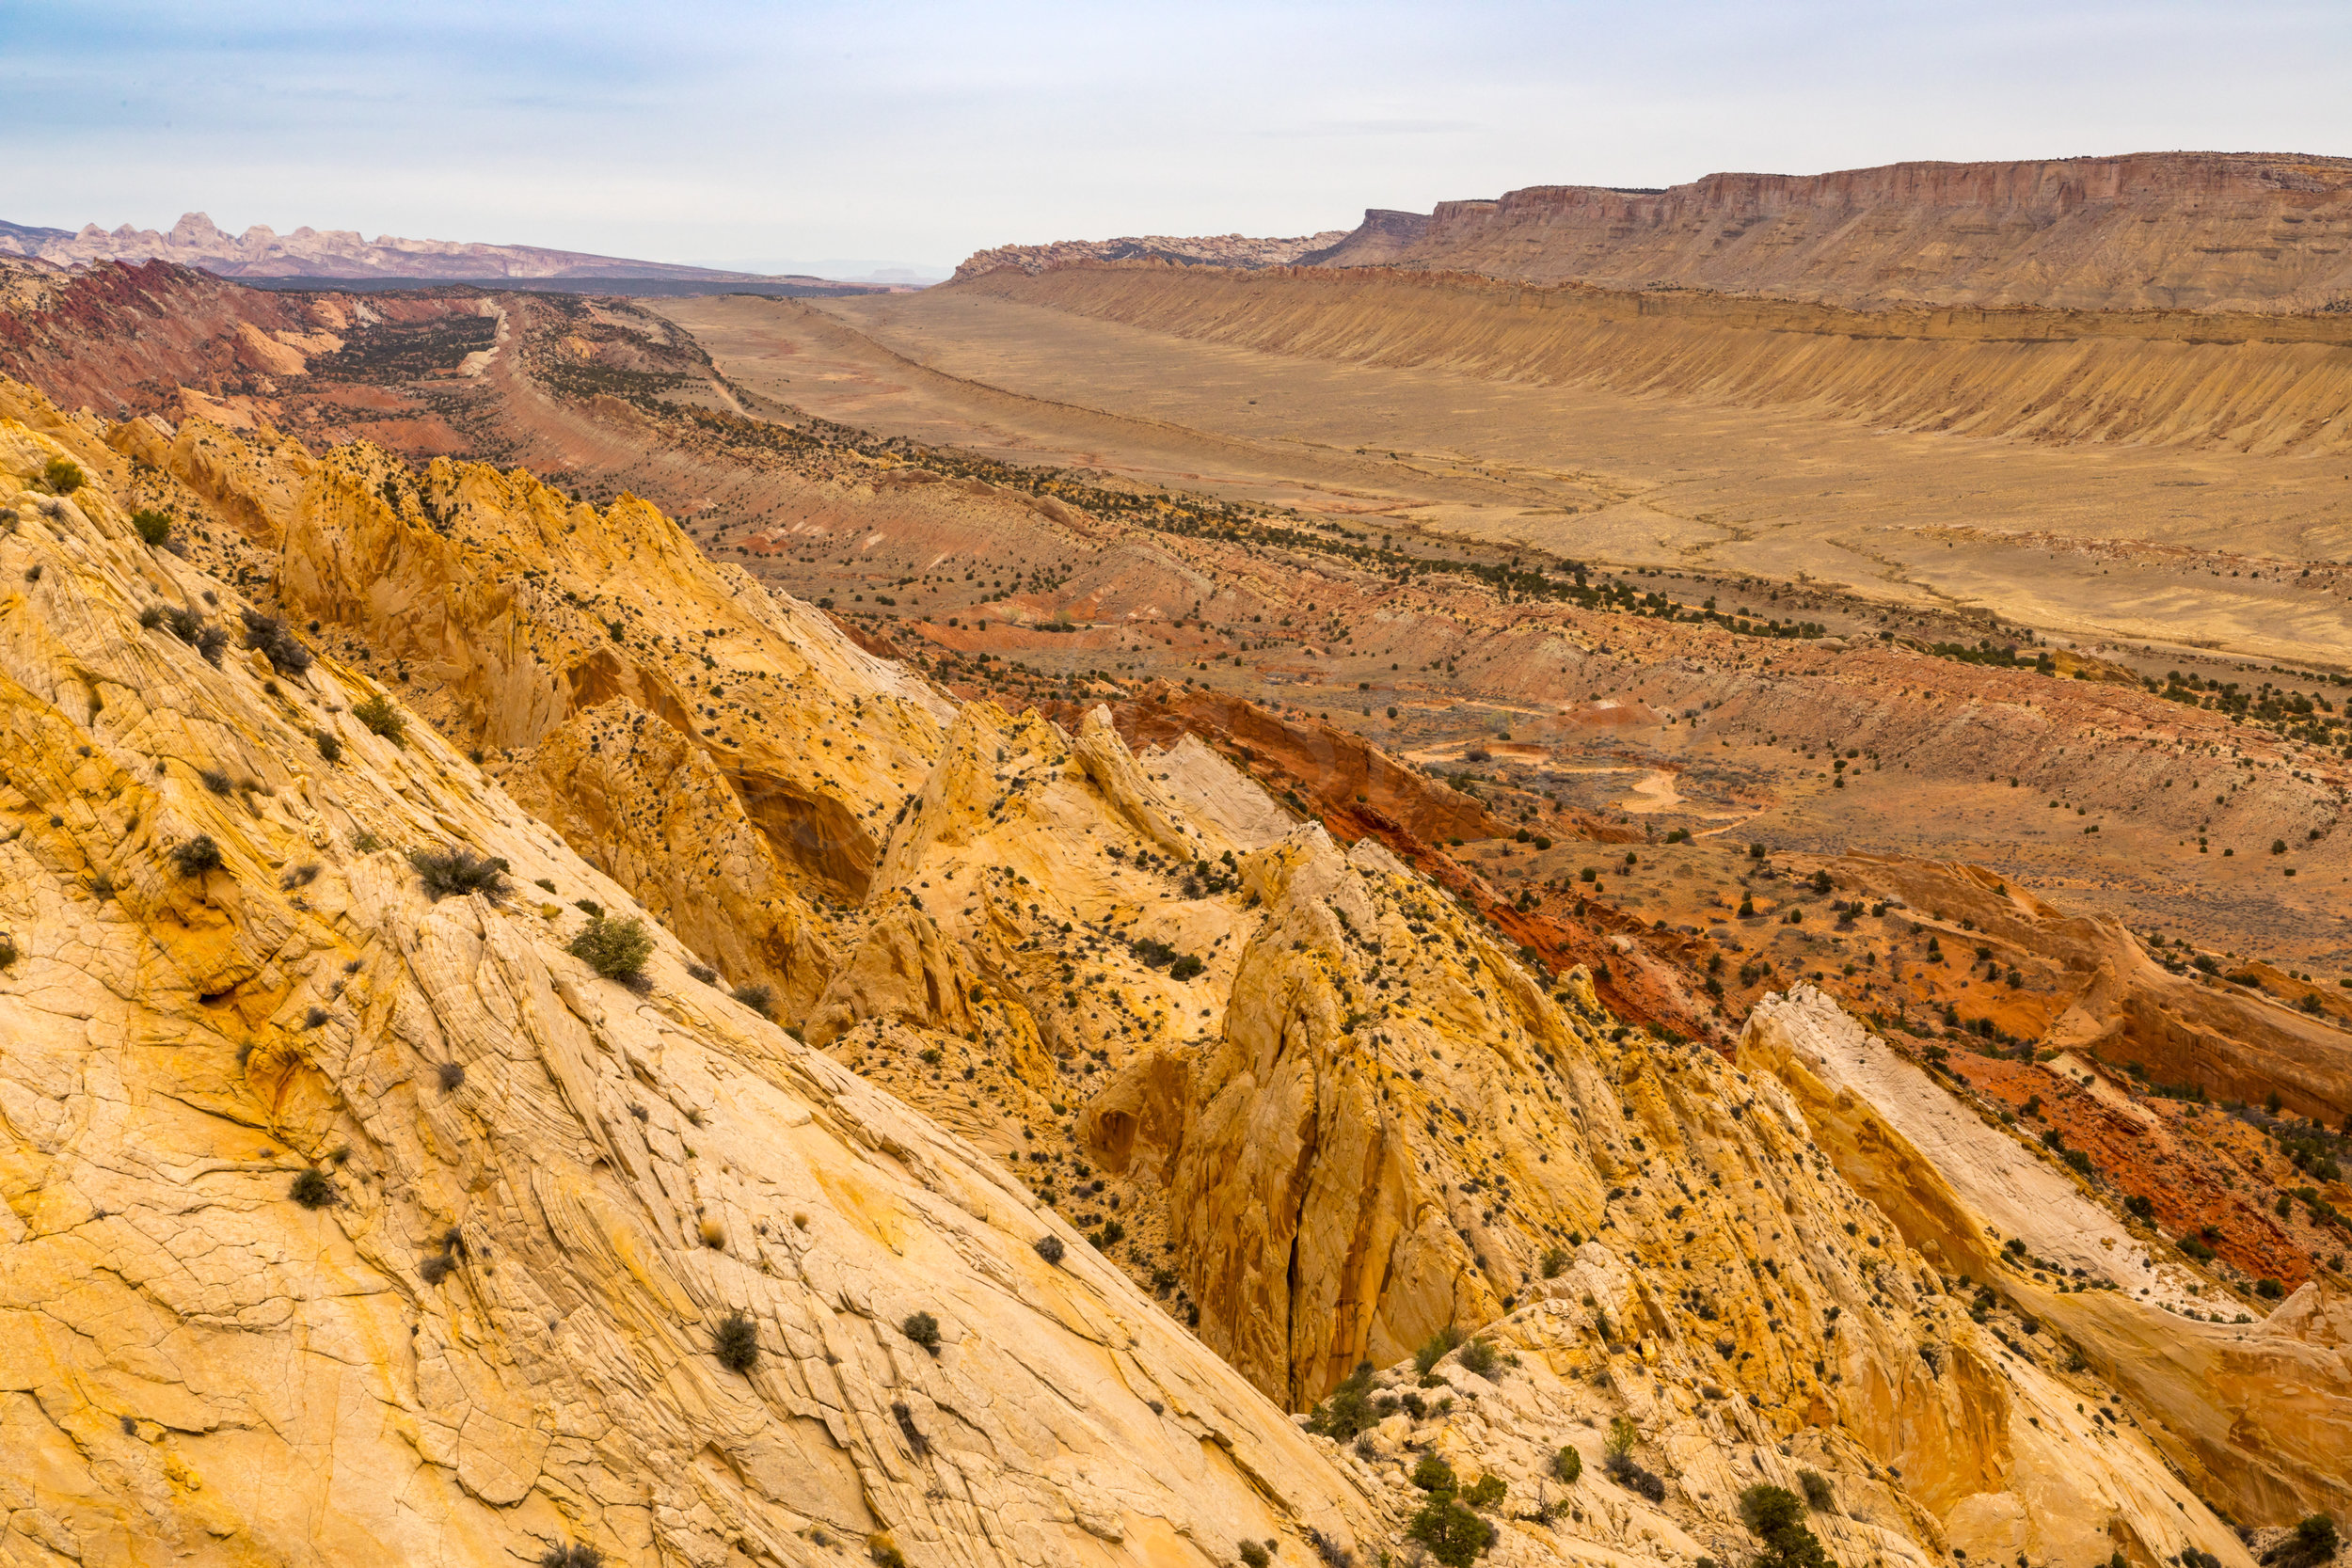 Capitol Reef National Park, Image # 4618